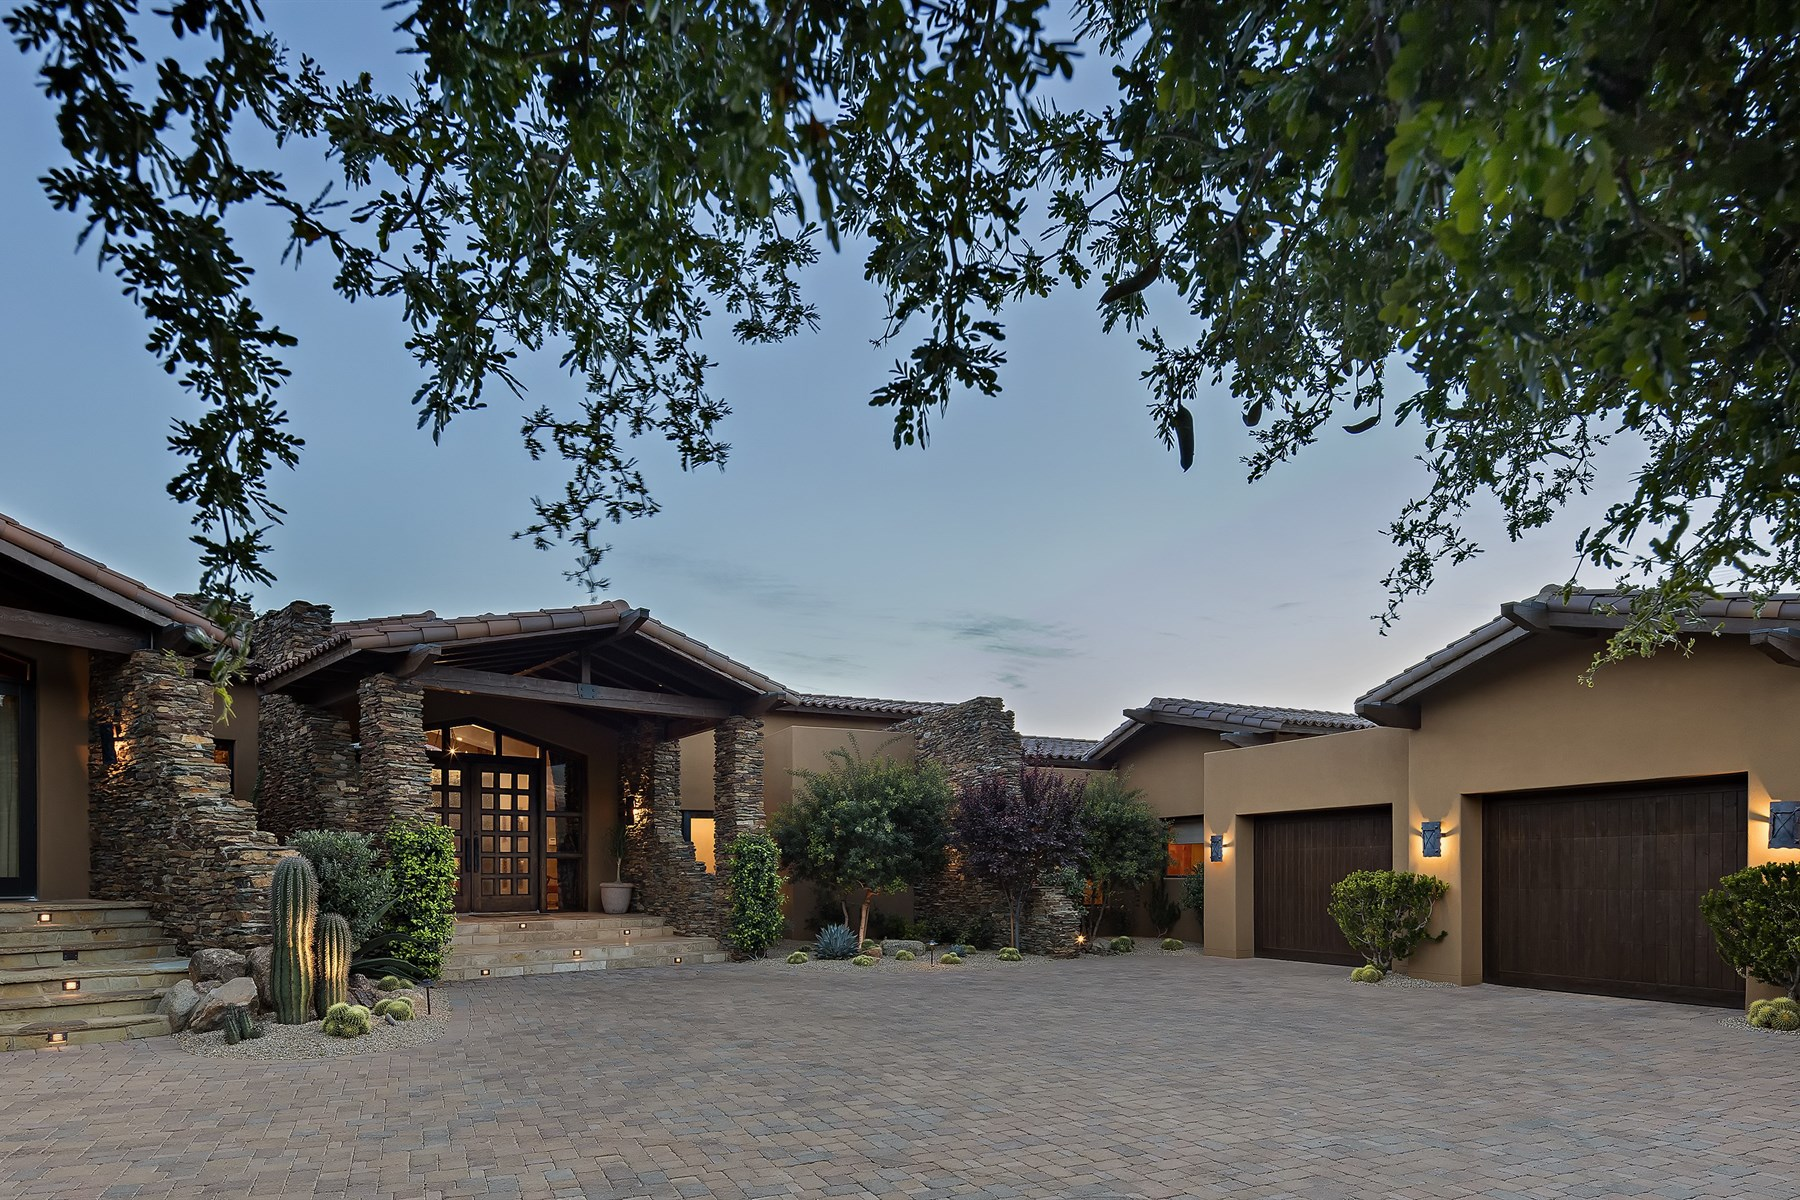 Moradia para Venda às Truly original home with the finest of finishes on a premier home site 9793 E Falling Star Dr, Scottsdale, Arizona, 85262 Estados Unidos